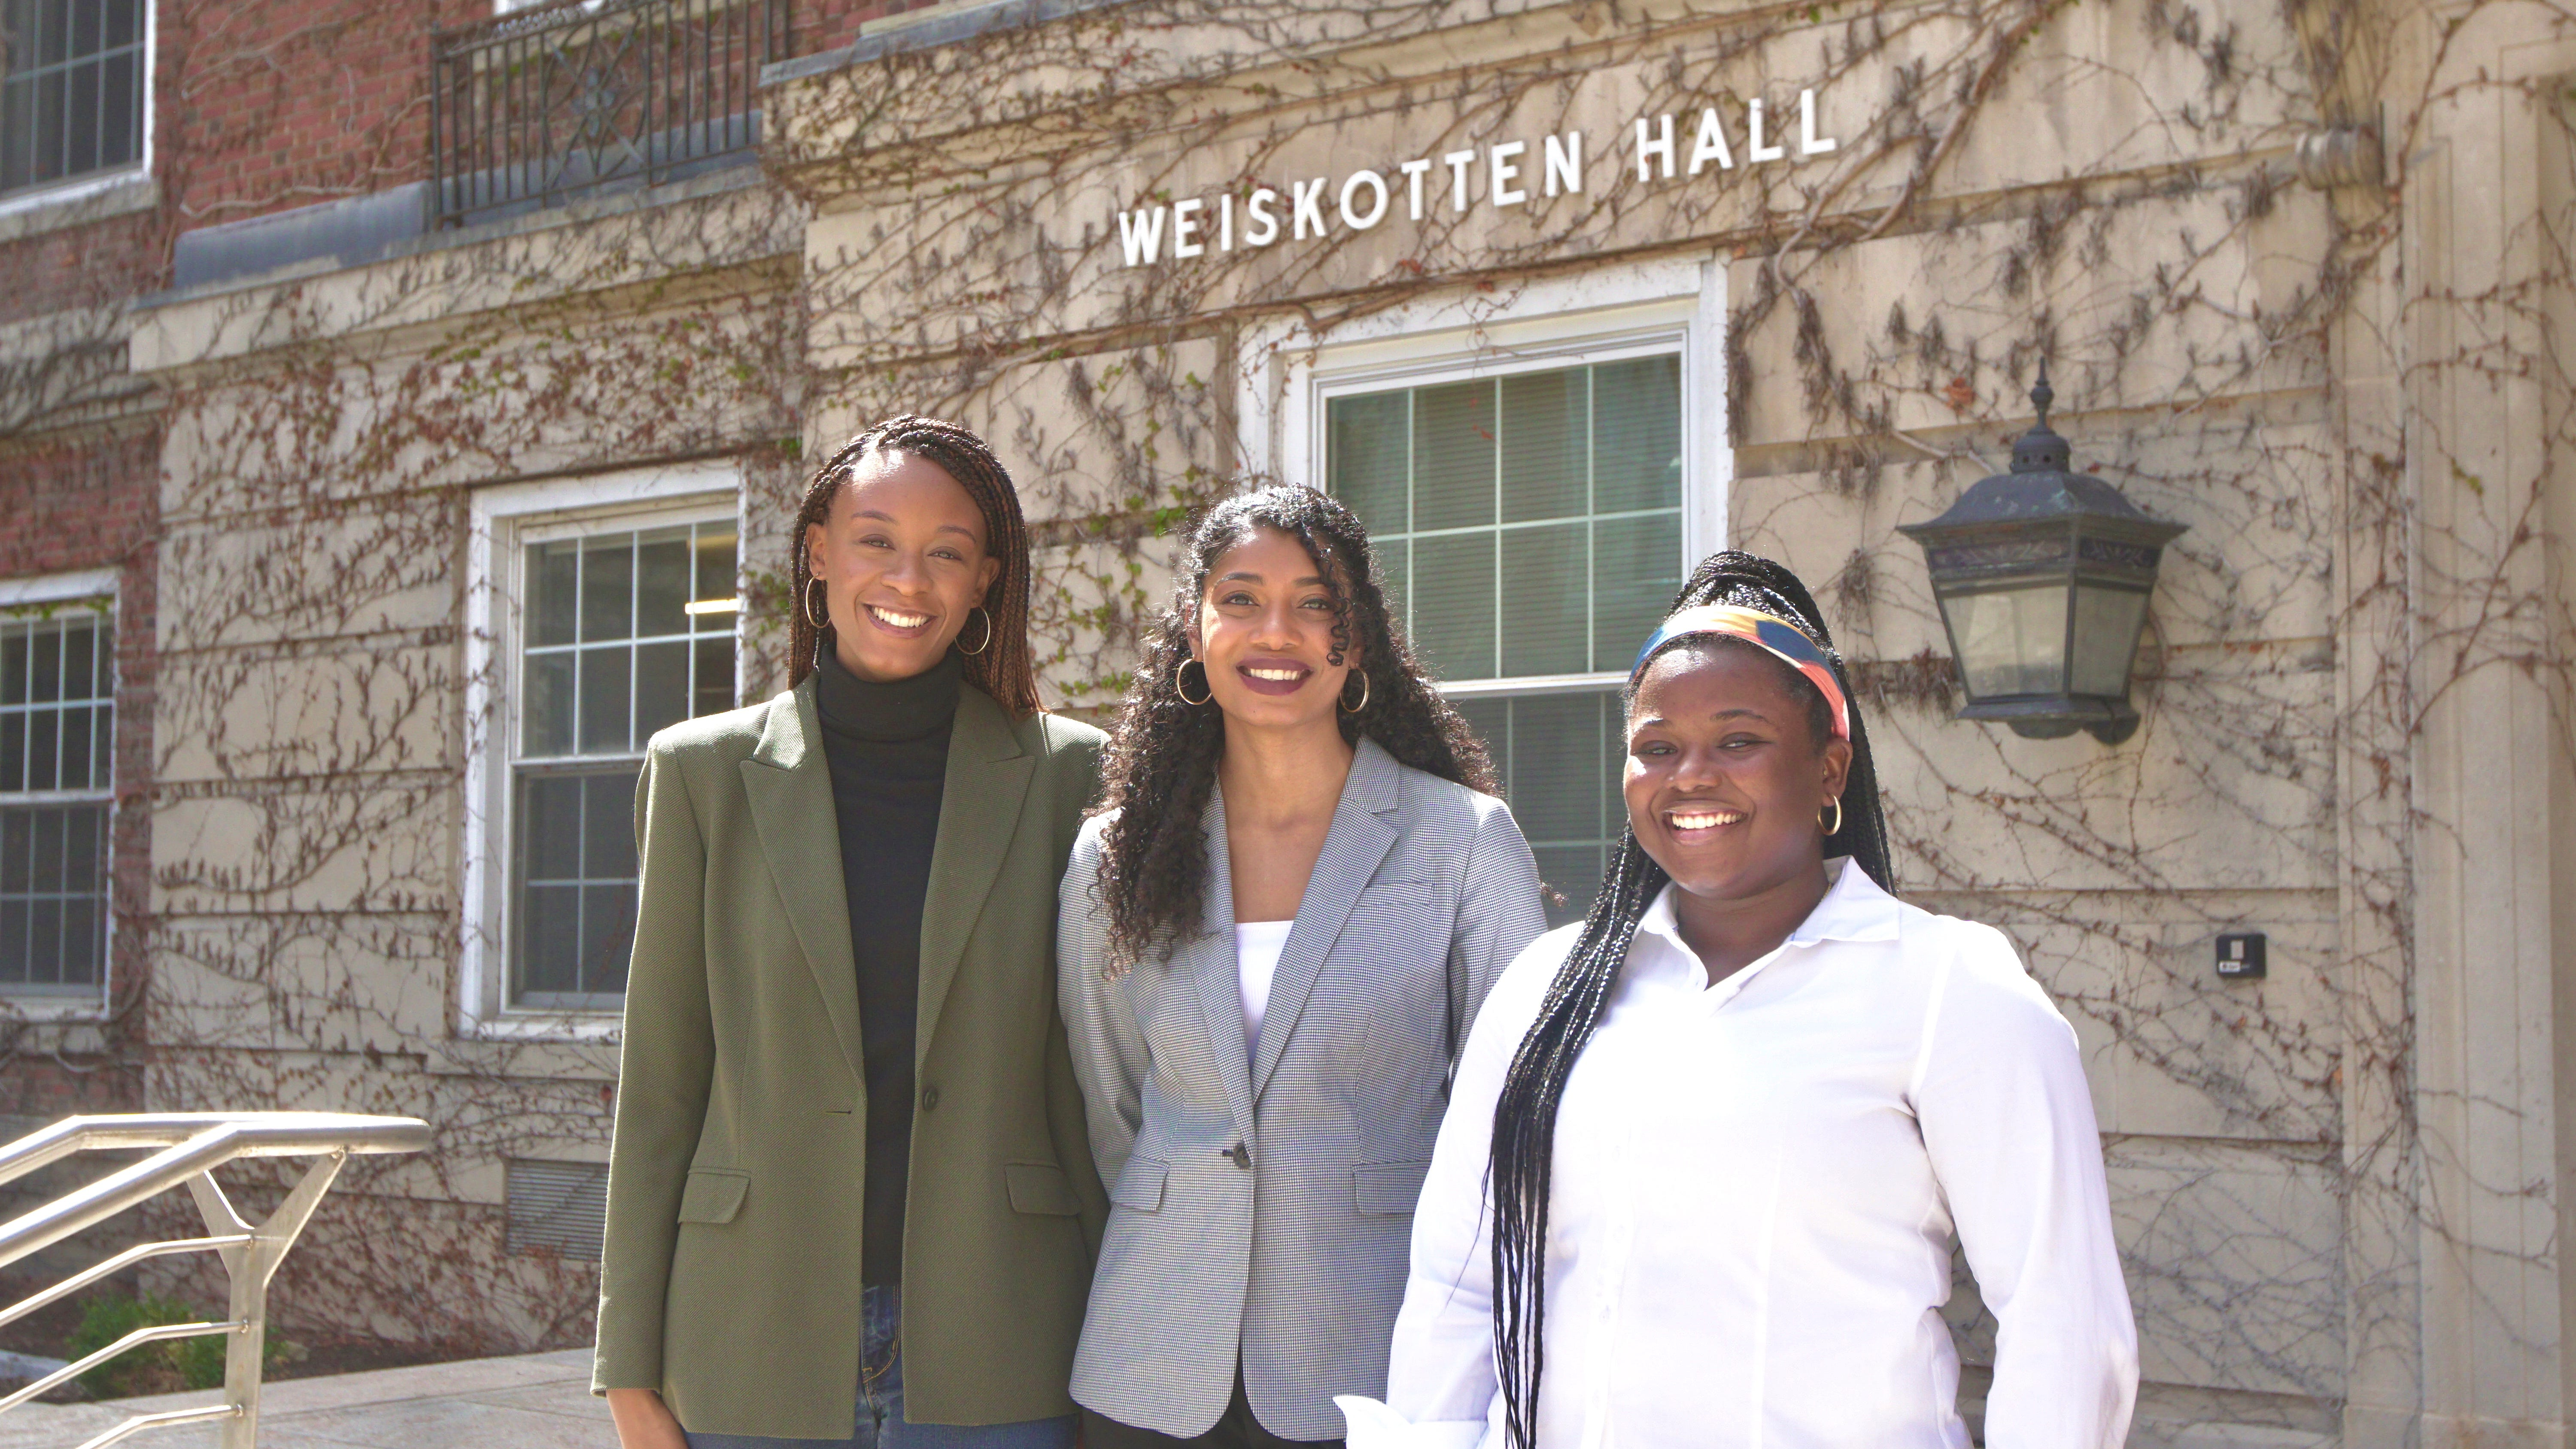 From left, Isabelle Thenor-Louis, Samantha Williams and Angelina Ellis, all medical students at Upstate Medical University, are promoting medical school diversity.